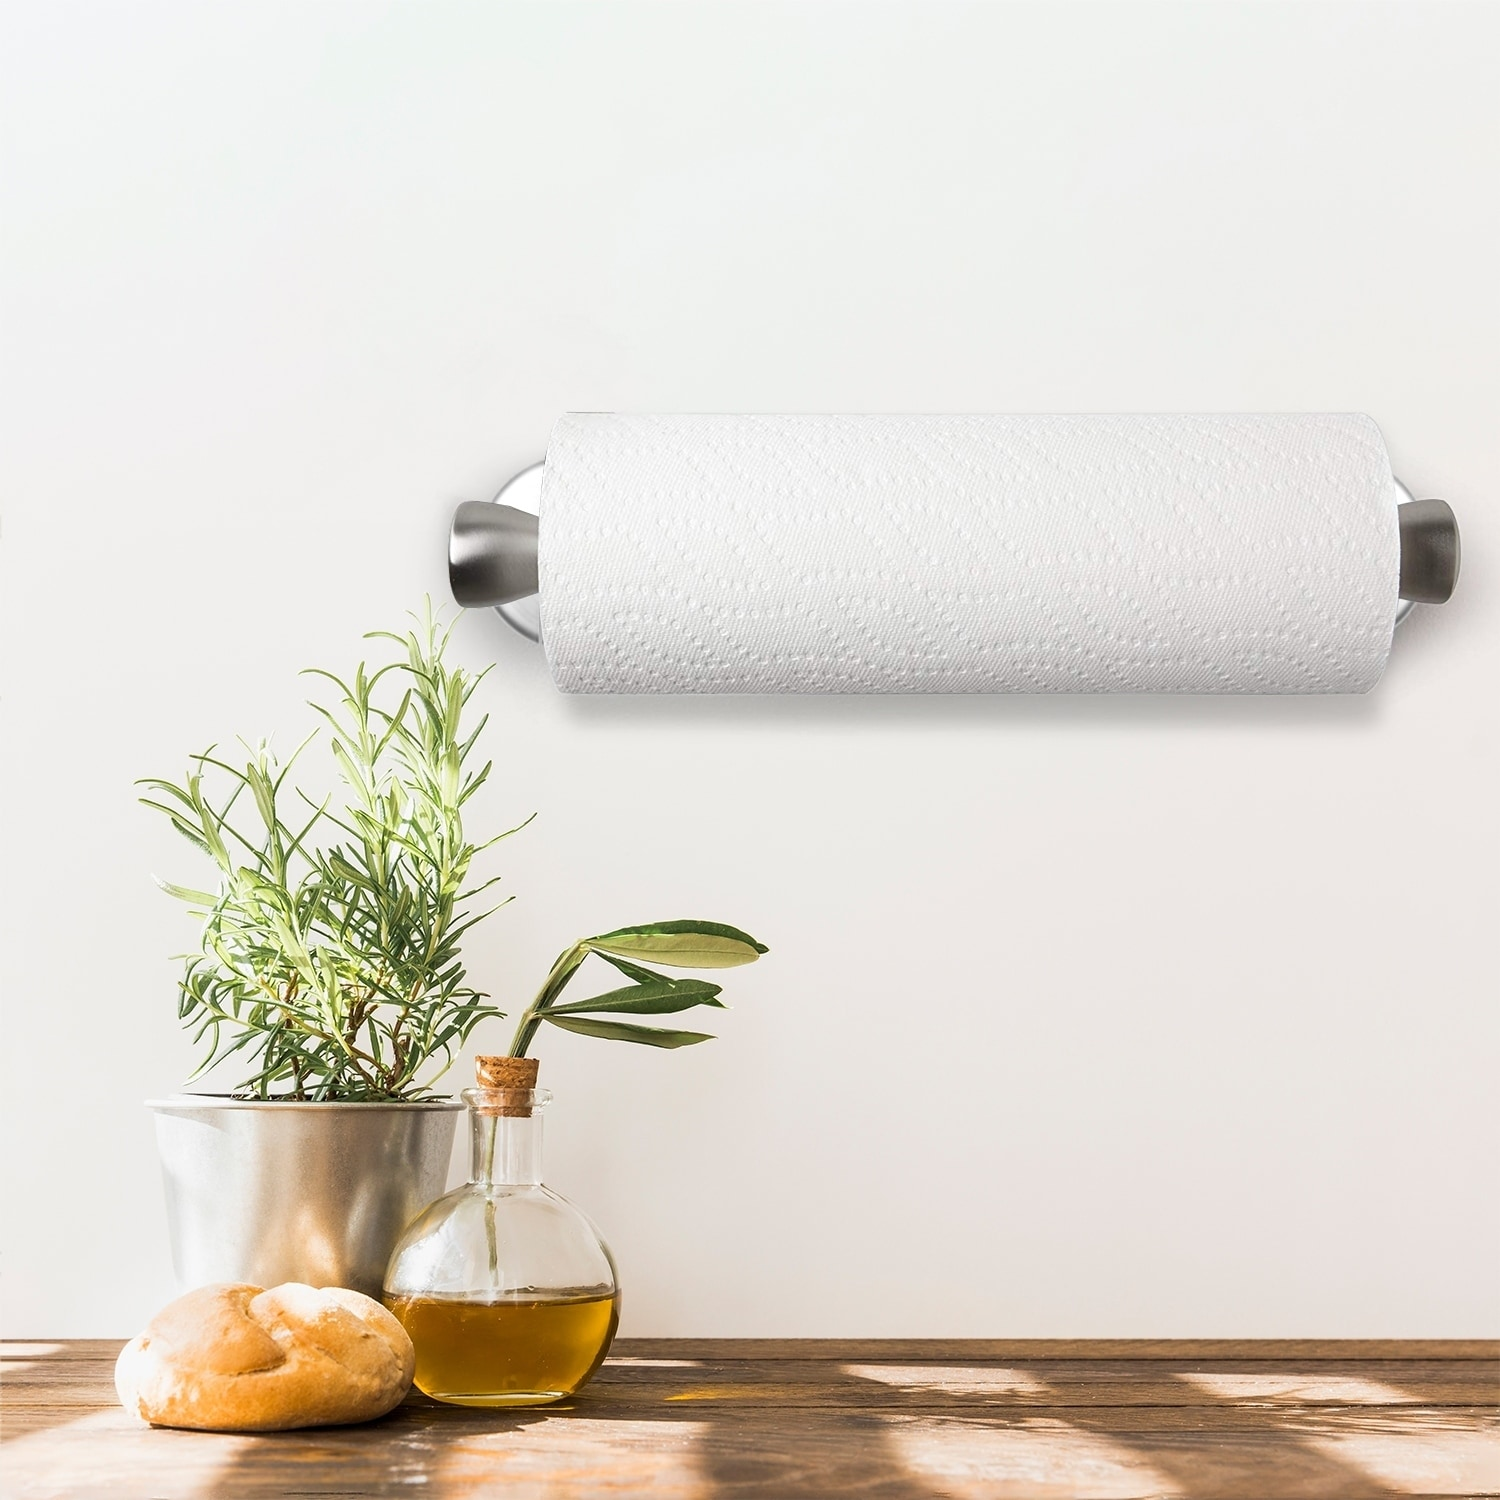 Home Improvement Hot Sale Automatic Paper Towel Holder Smart Dispenser Mounts Under Cabinets For Home And Office Use Stainless Steel Finish